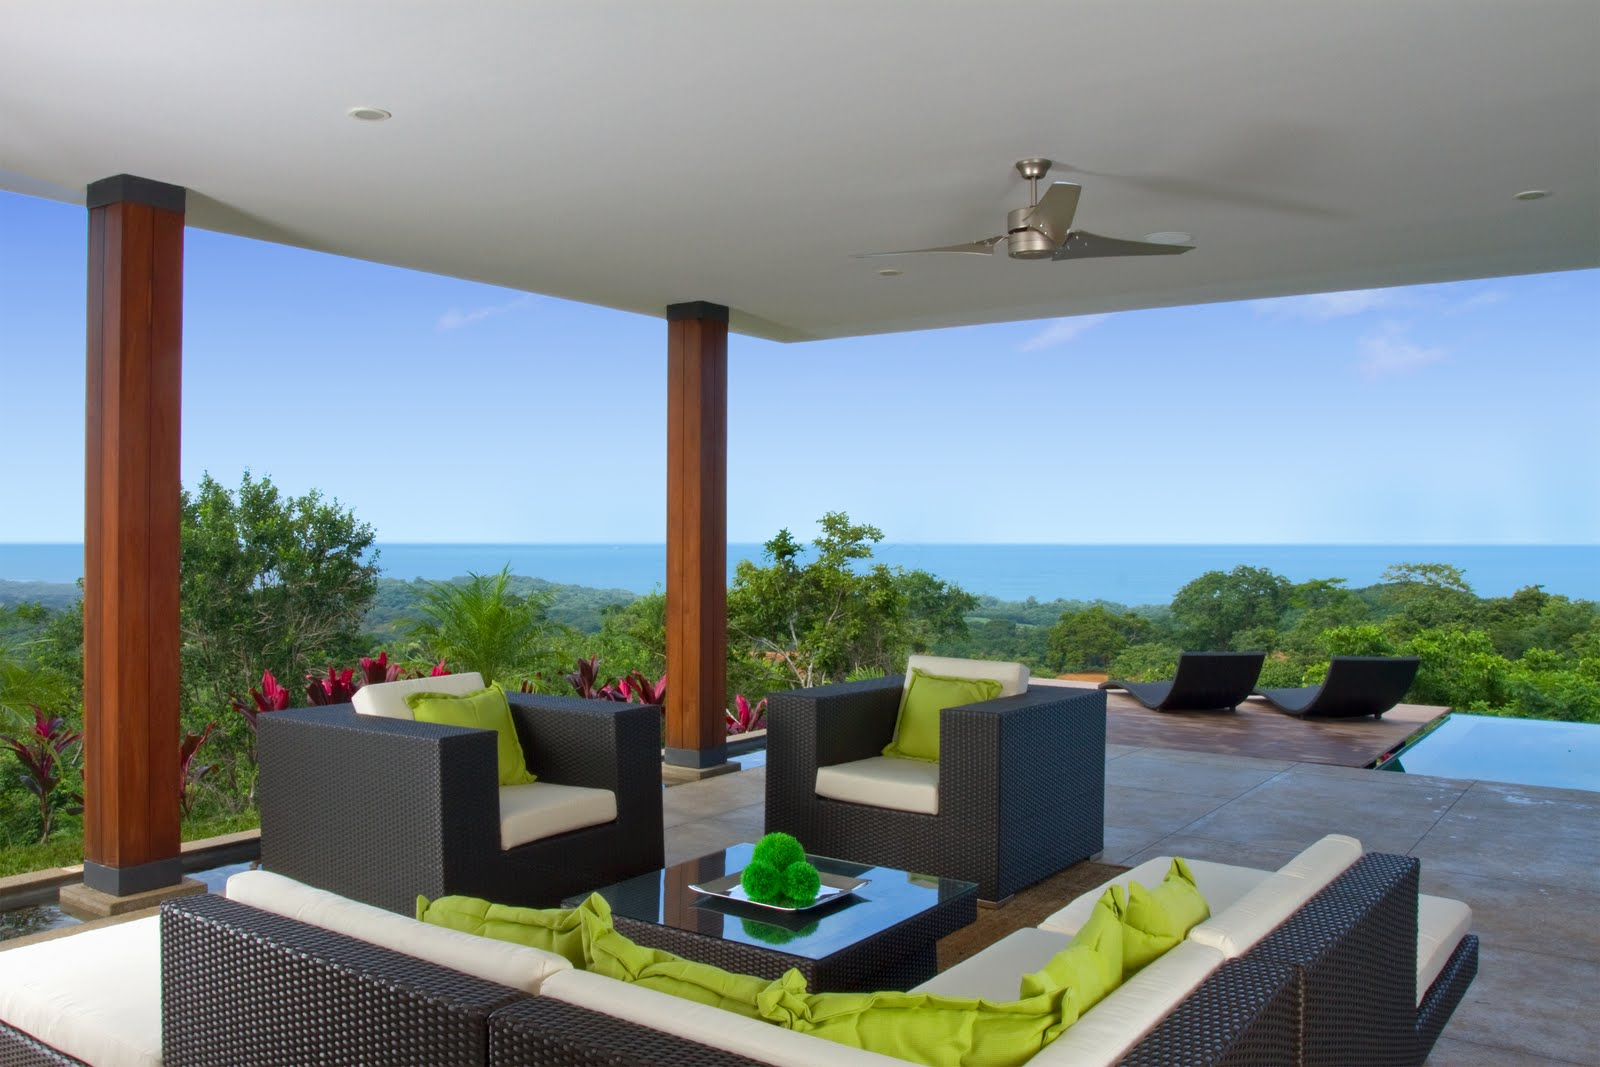 Jet luxury resorts costa rica vacation rental houses for Luxury rental costa rica